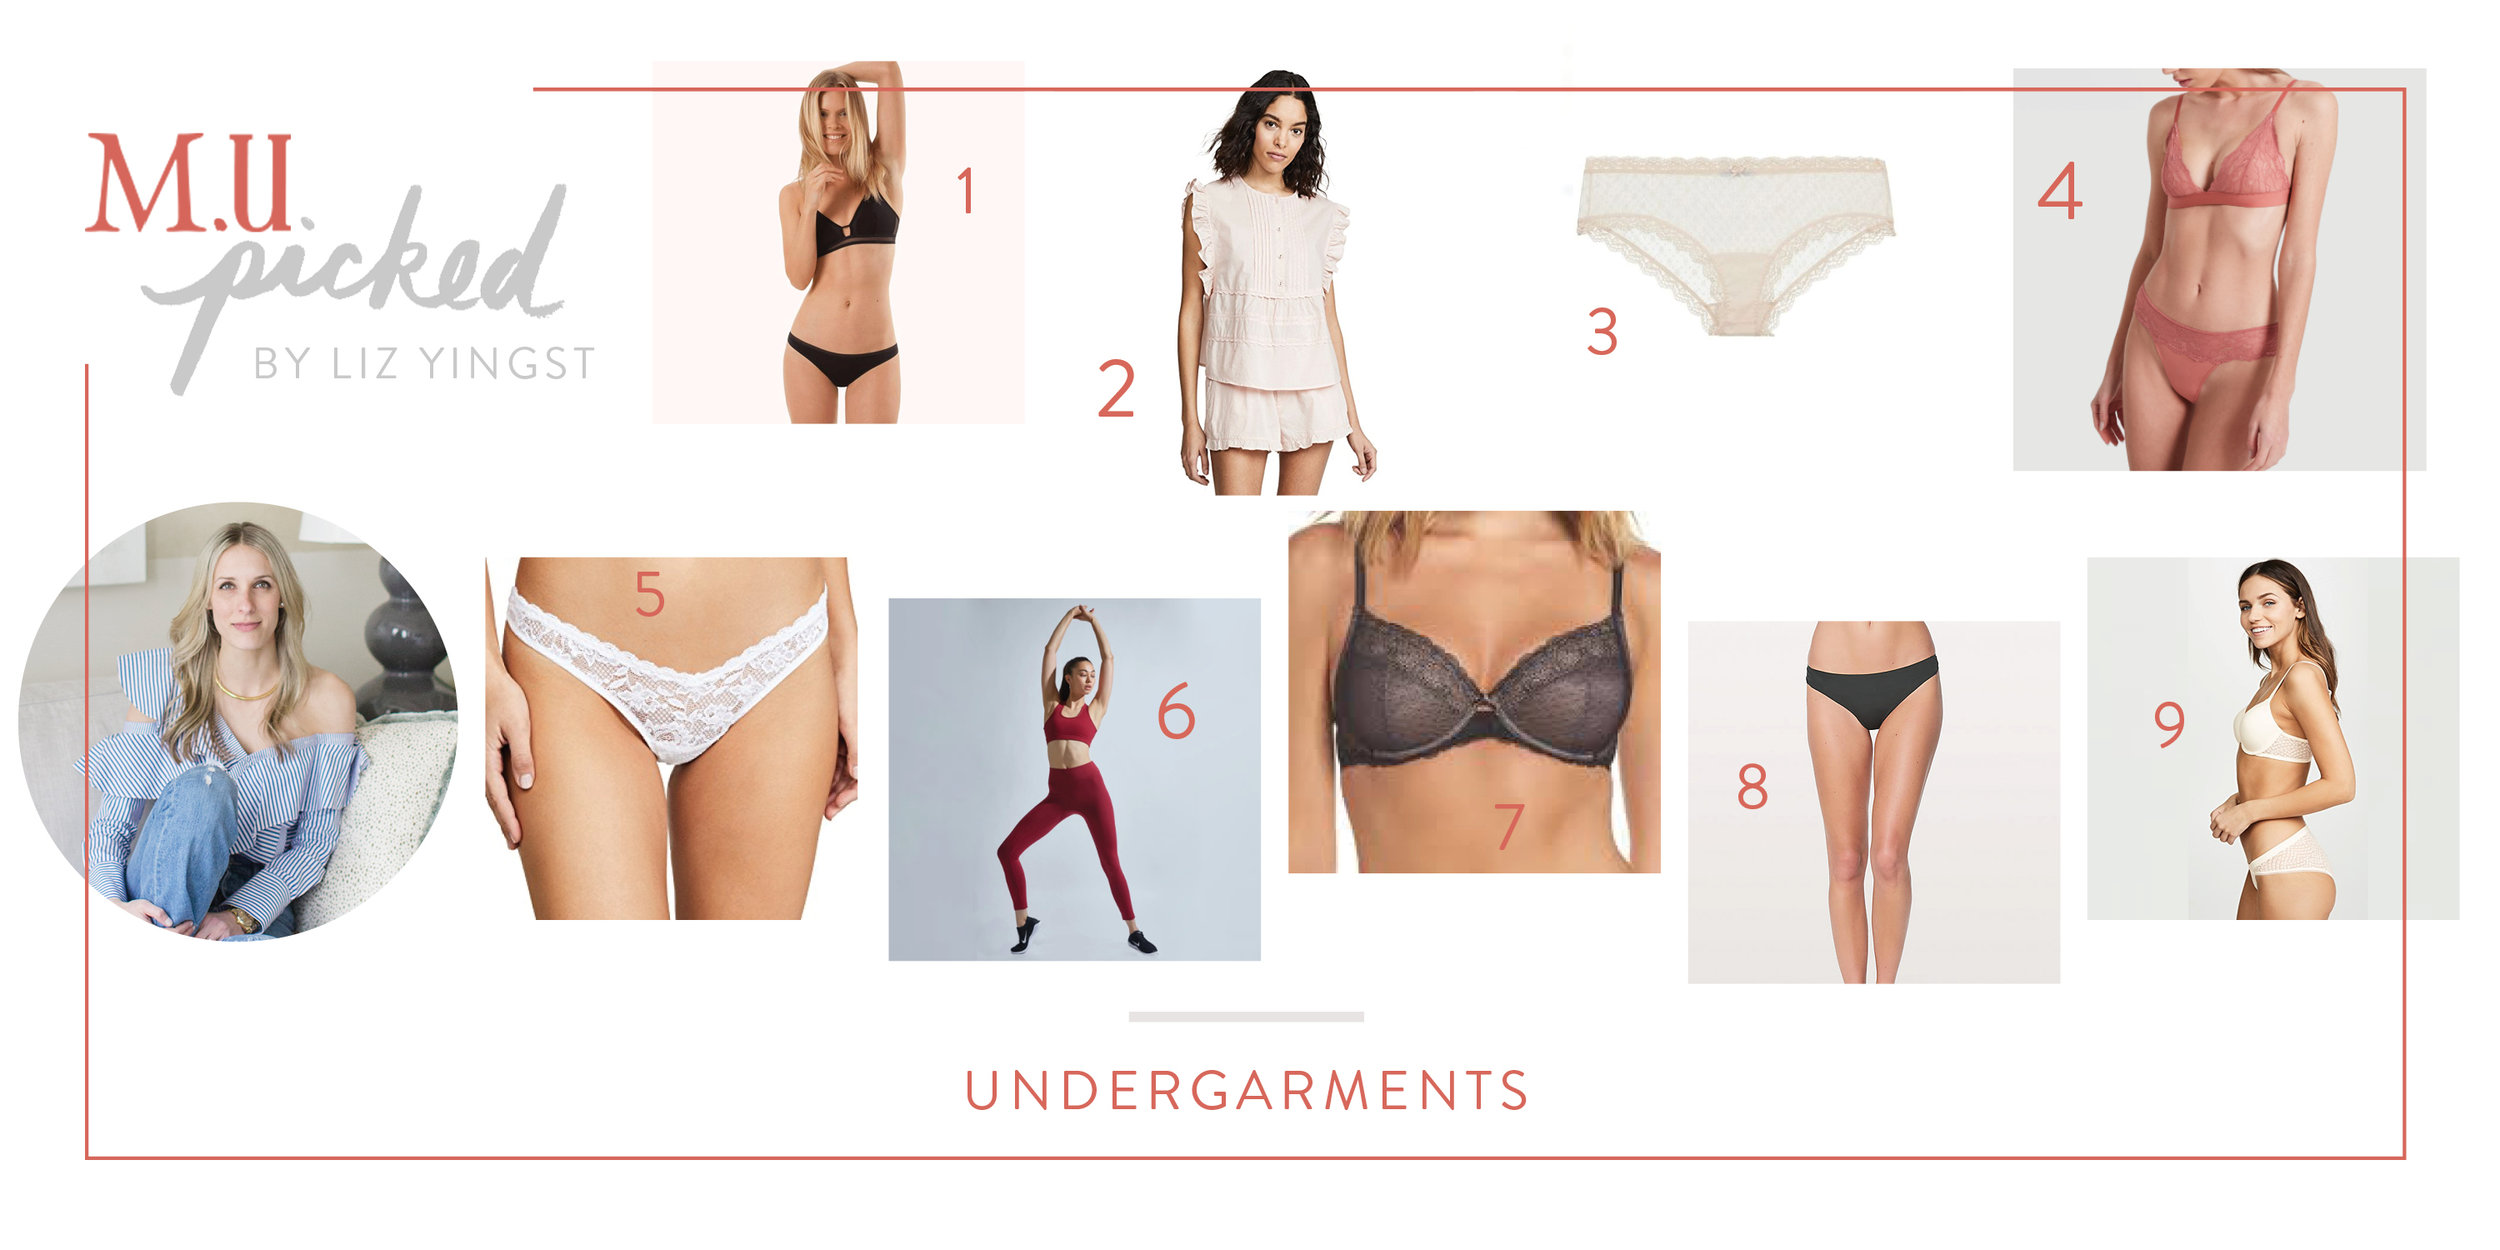 MU_Picked_undergarments.jpg